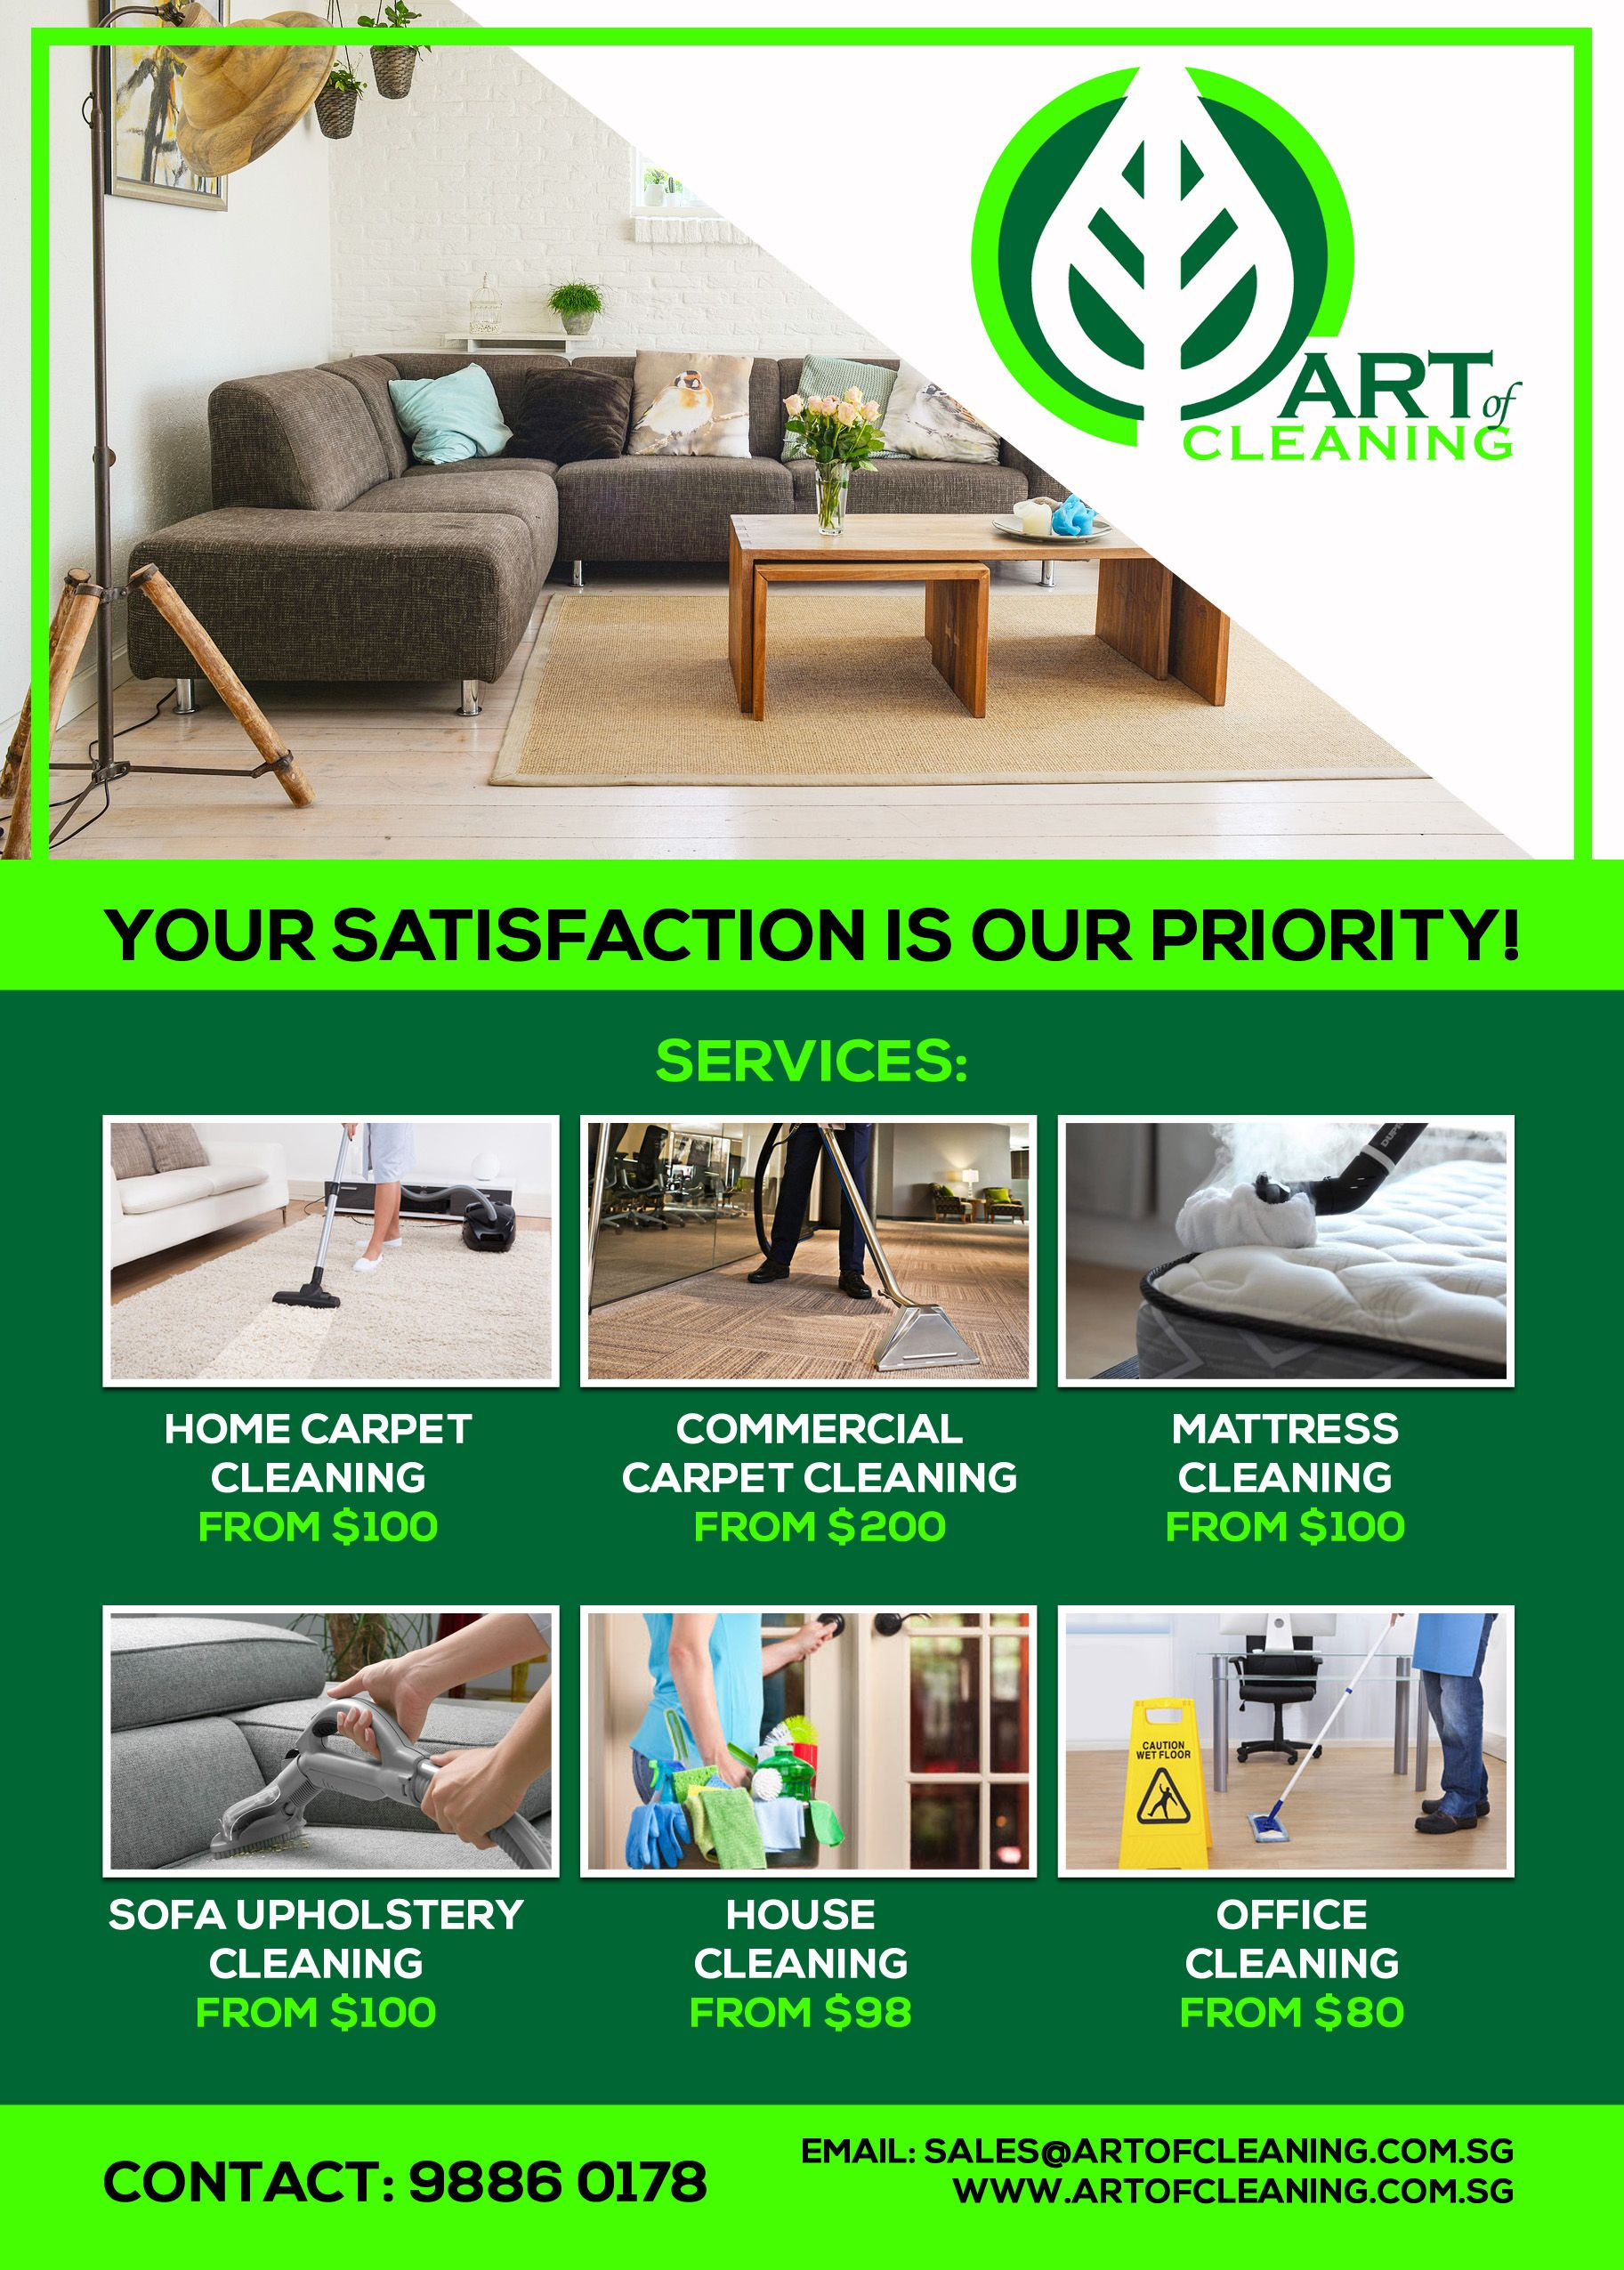 Art Of Cleaning Offers A Wide Range Of Cleaning Services Home Carpet How To Clean Carpet Clean Office